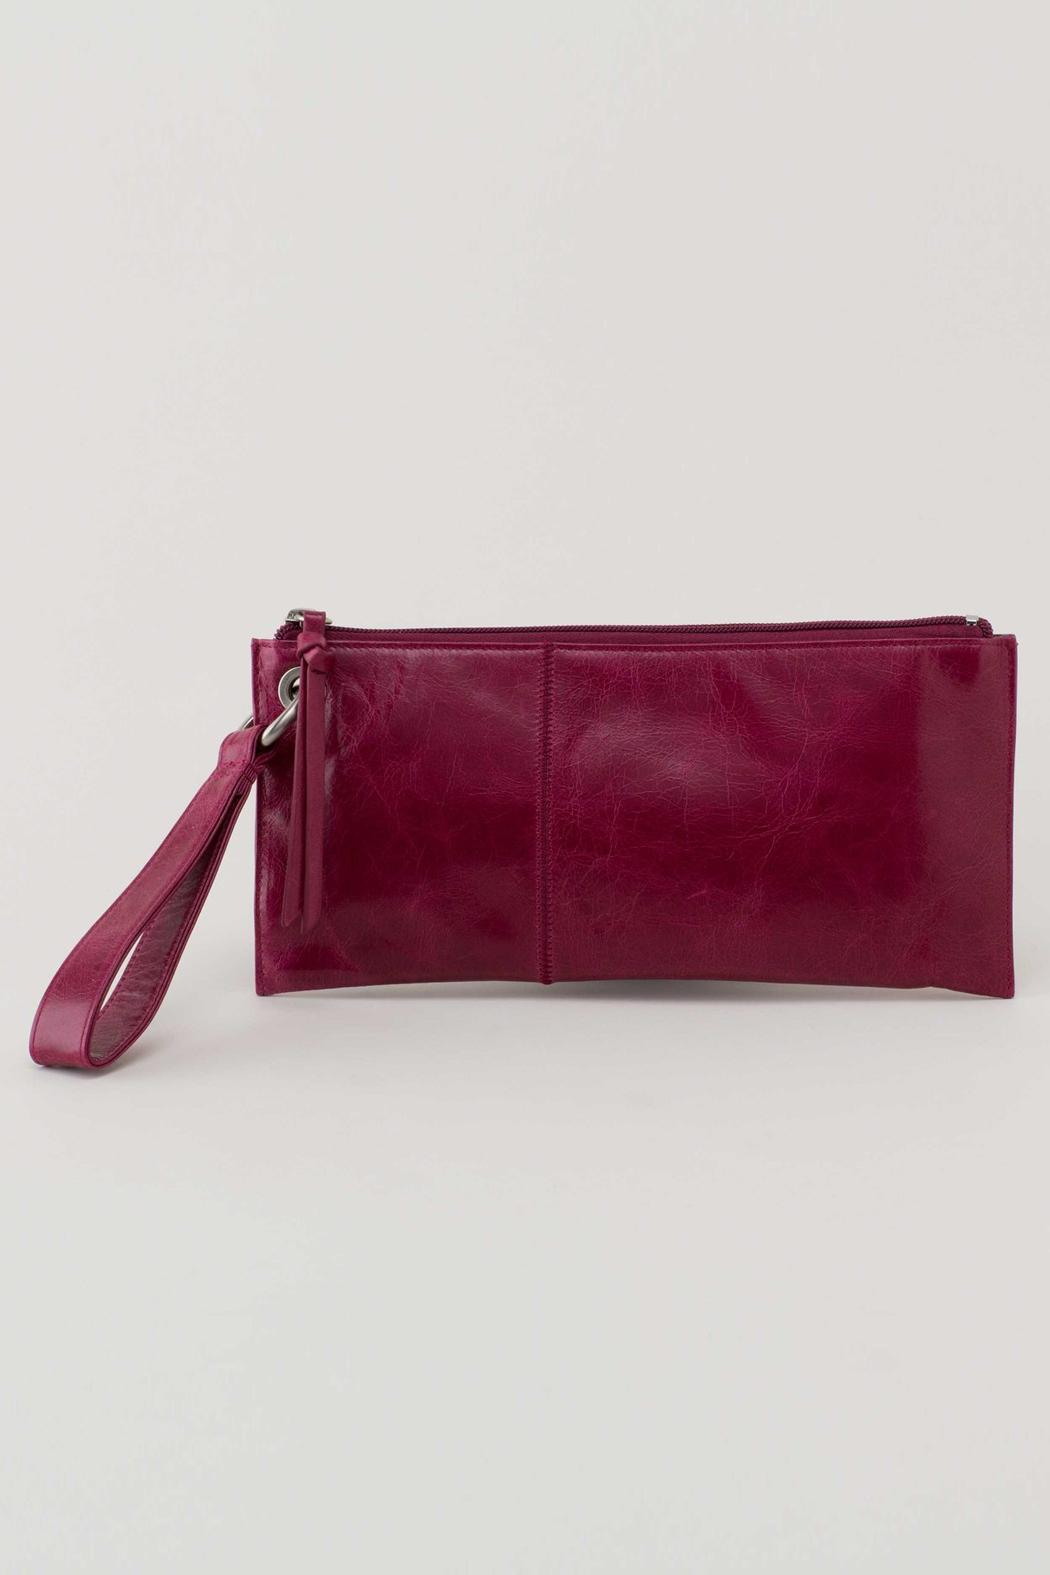 VIDA Leather Statement Clutch - The Three by VIDA ePMB0kGT3